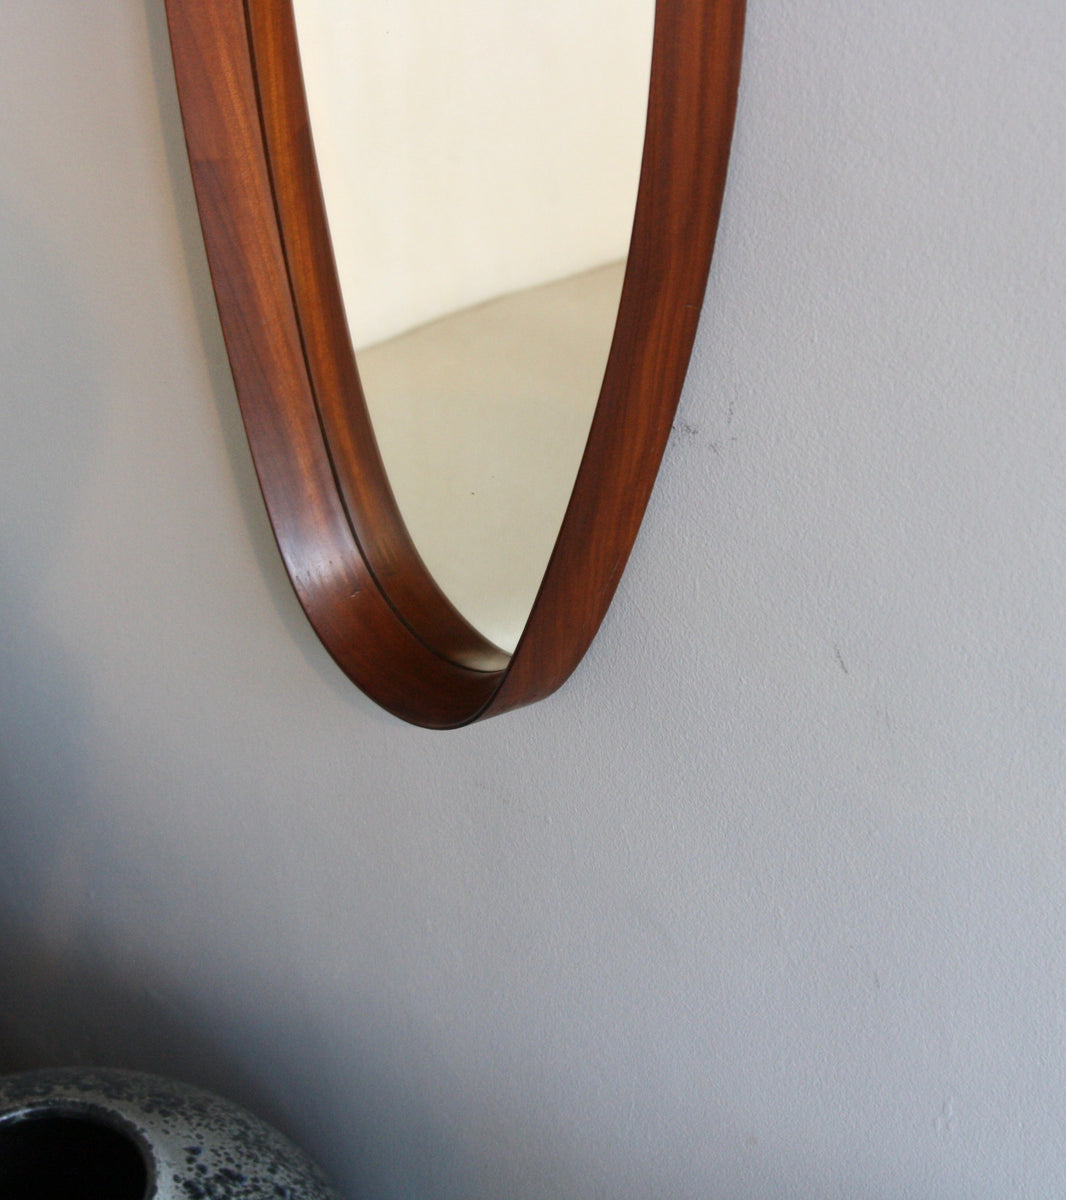 Excellent Condition Teak Oval Mirror with Leather Strap Denmark C. 1950